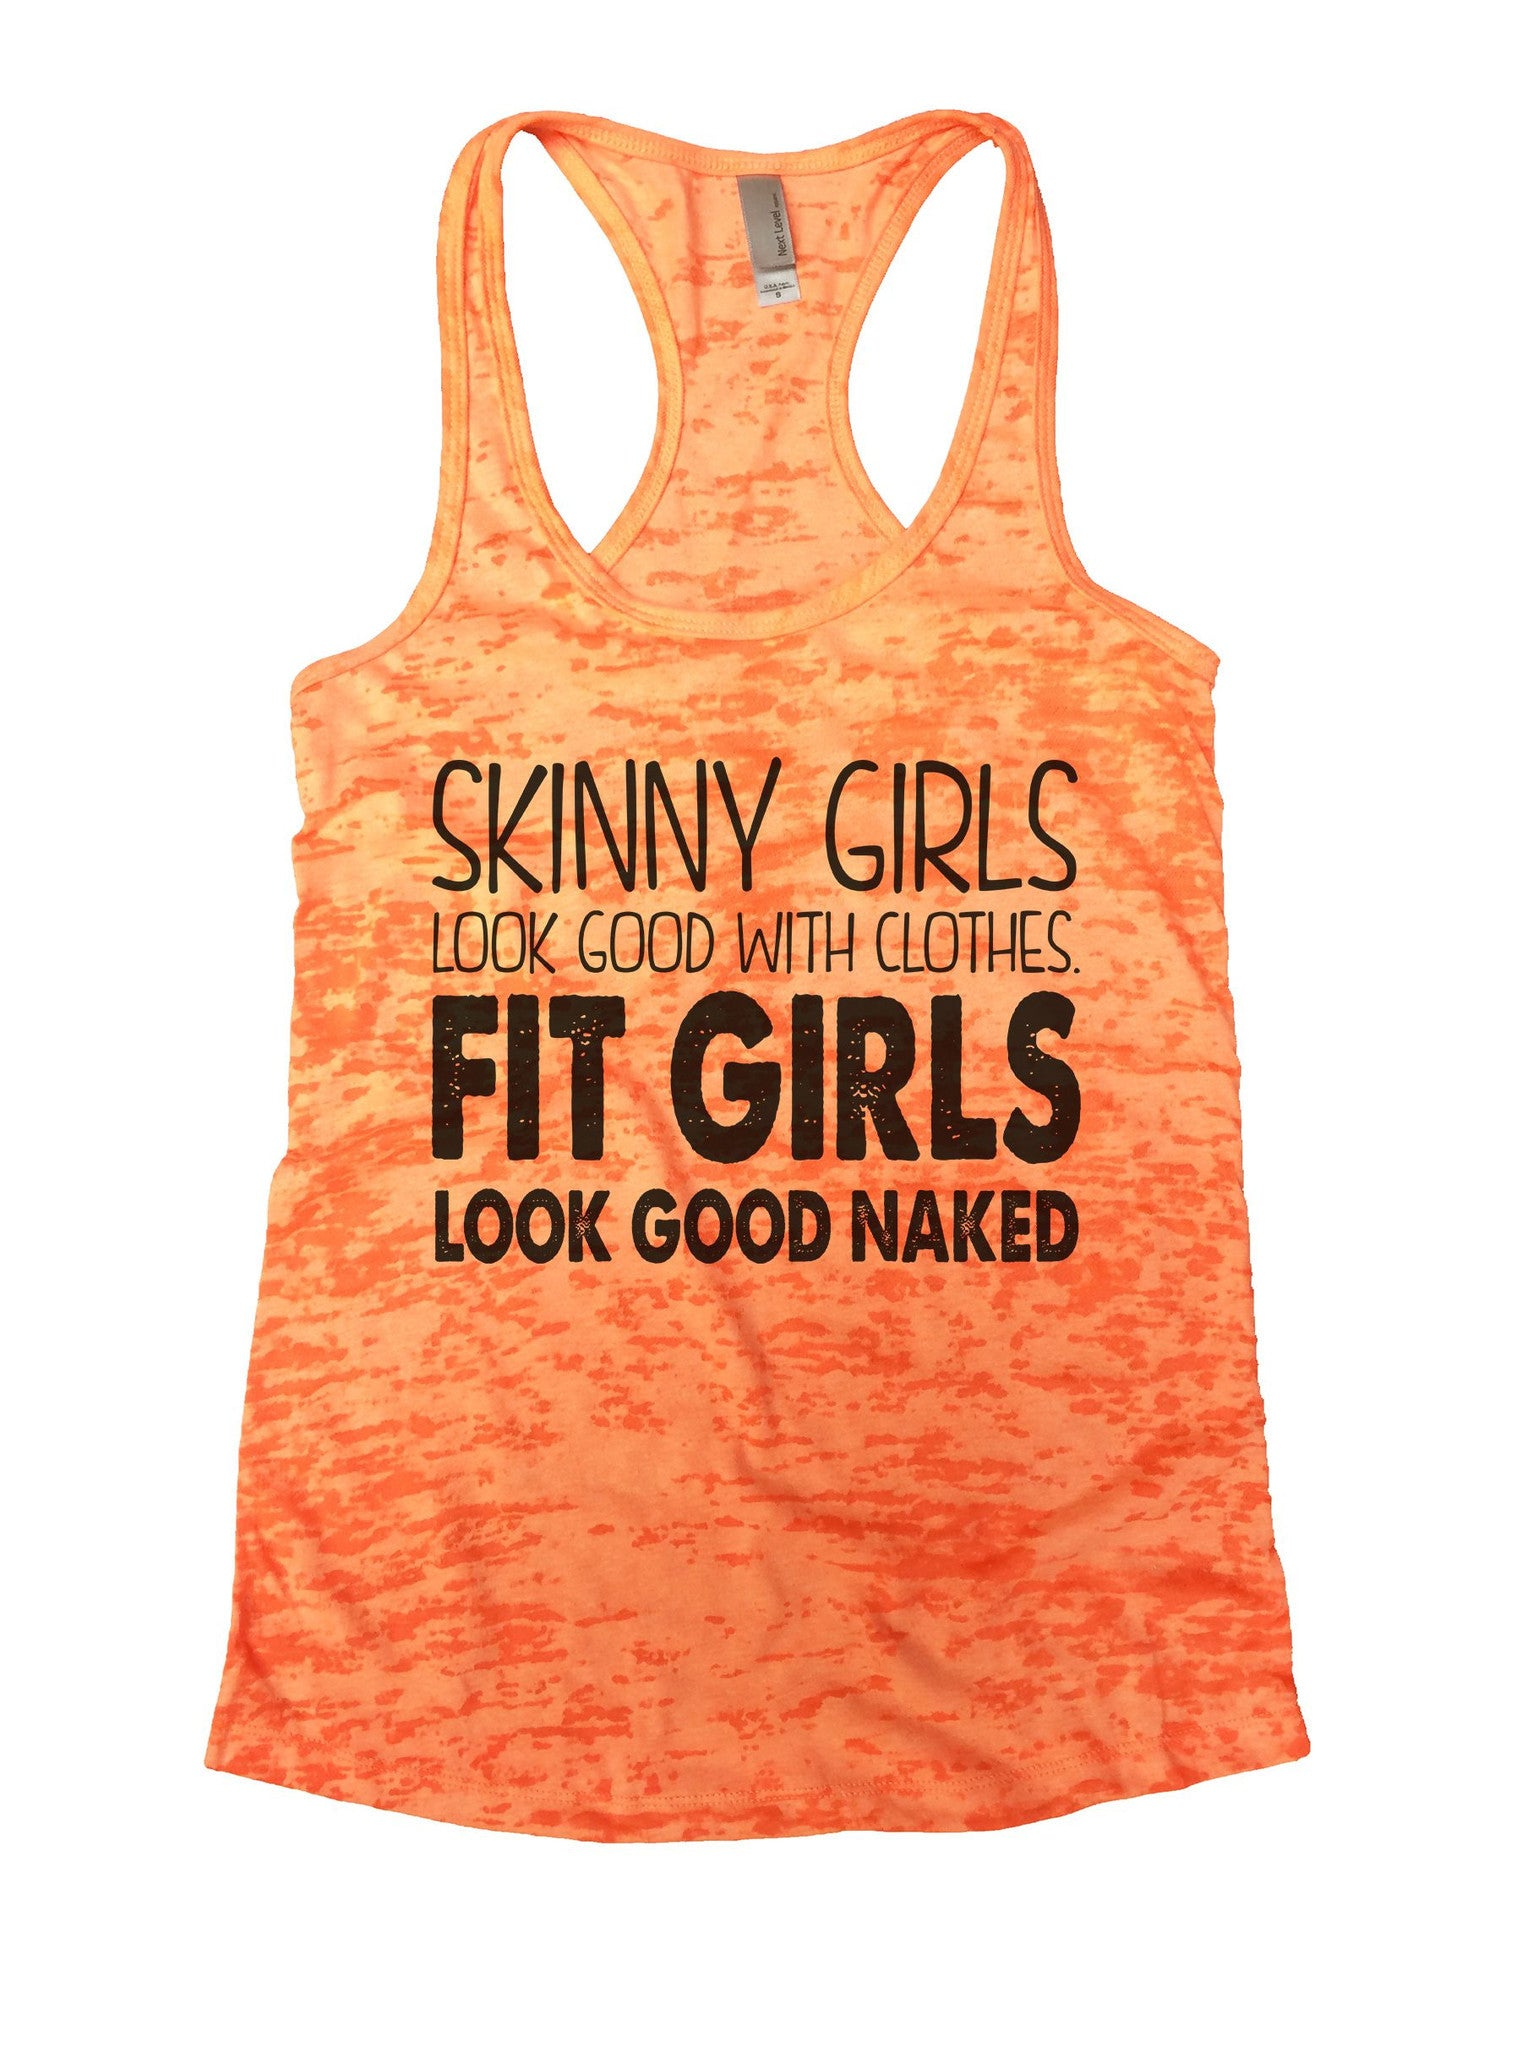 Skinny Girls Look Good With Clothes. Fit Girls Look Good Naked Burnout Tank Top By BurnoutTankTops.com - 916 - Funny Shirts Tank Tops Burnouts and Triblends  - 7